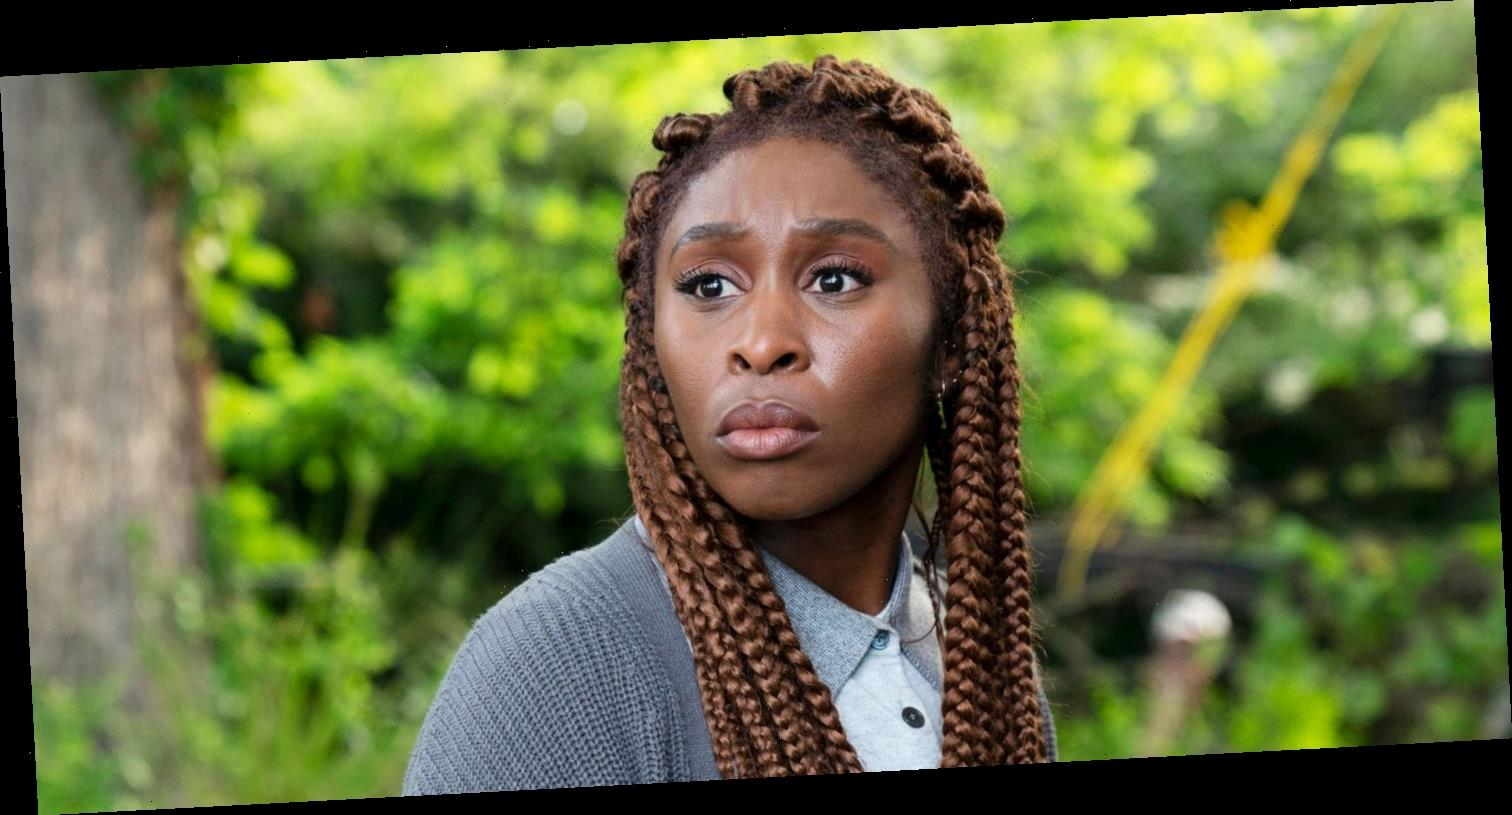 Cynthia Erivo's Superstar Hot Streak Continues With 'The Outsider'